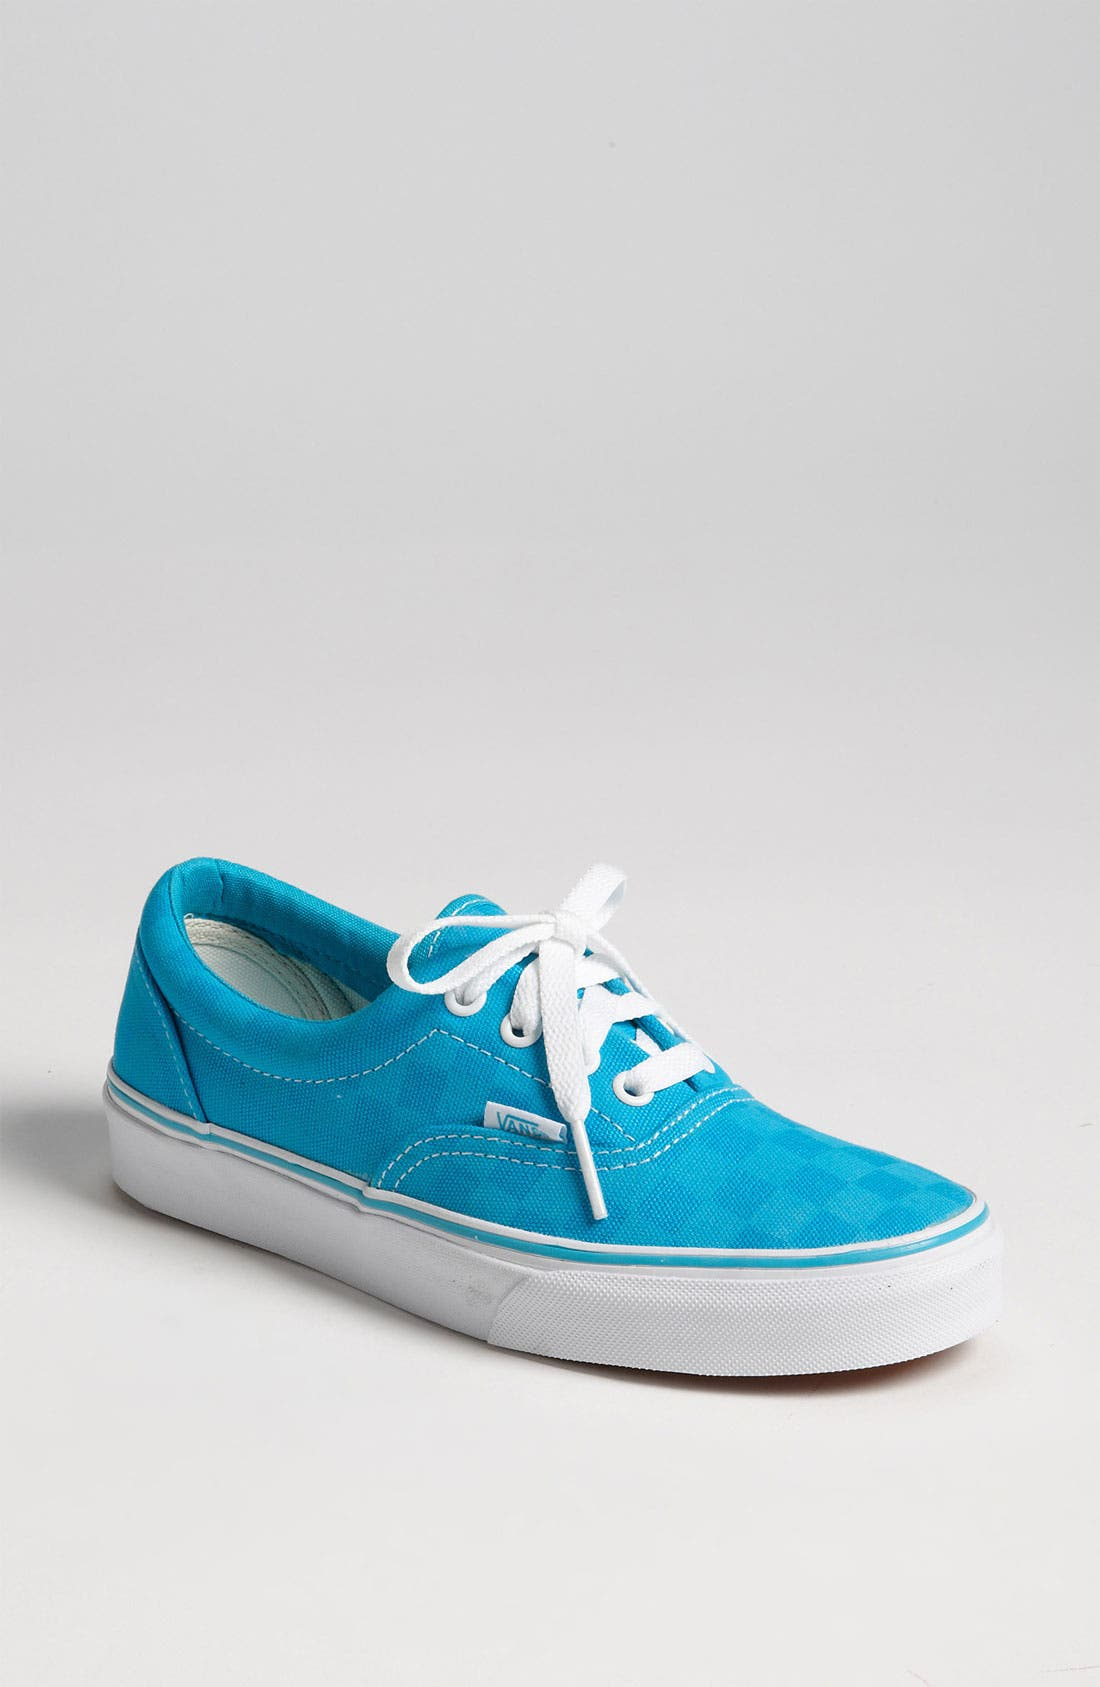 Alternate Image 1 Selected - Vans 'Era' Sneaker (Women)